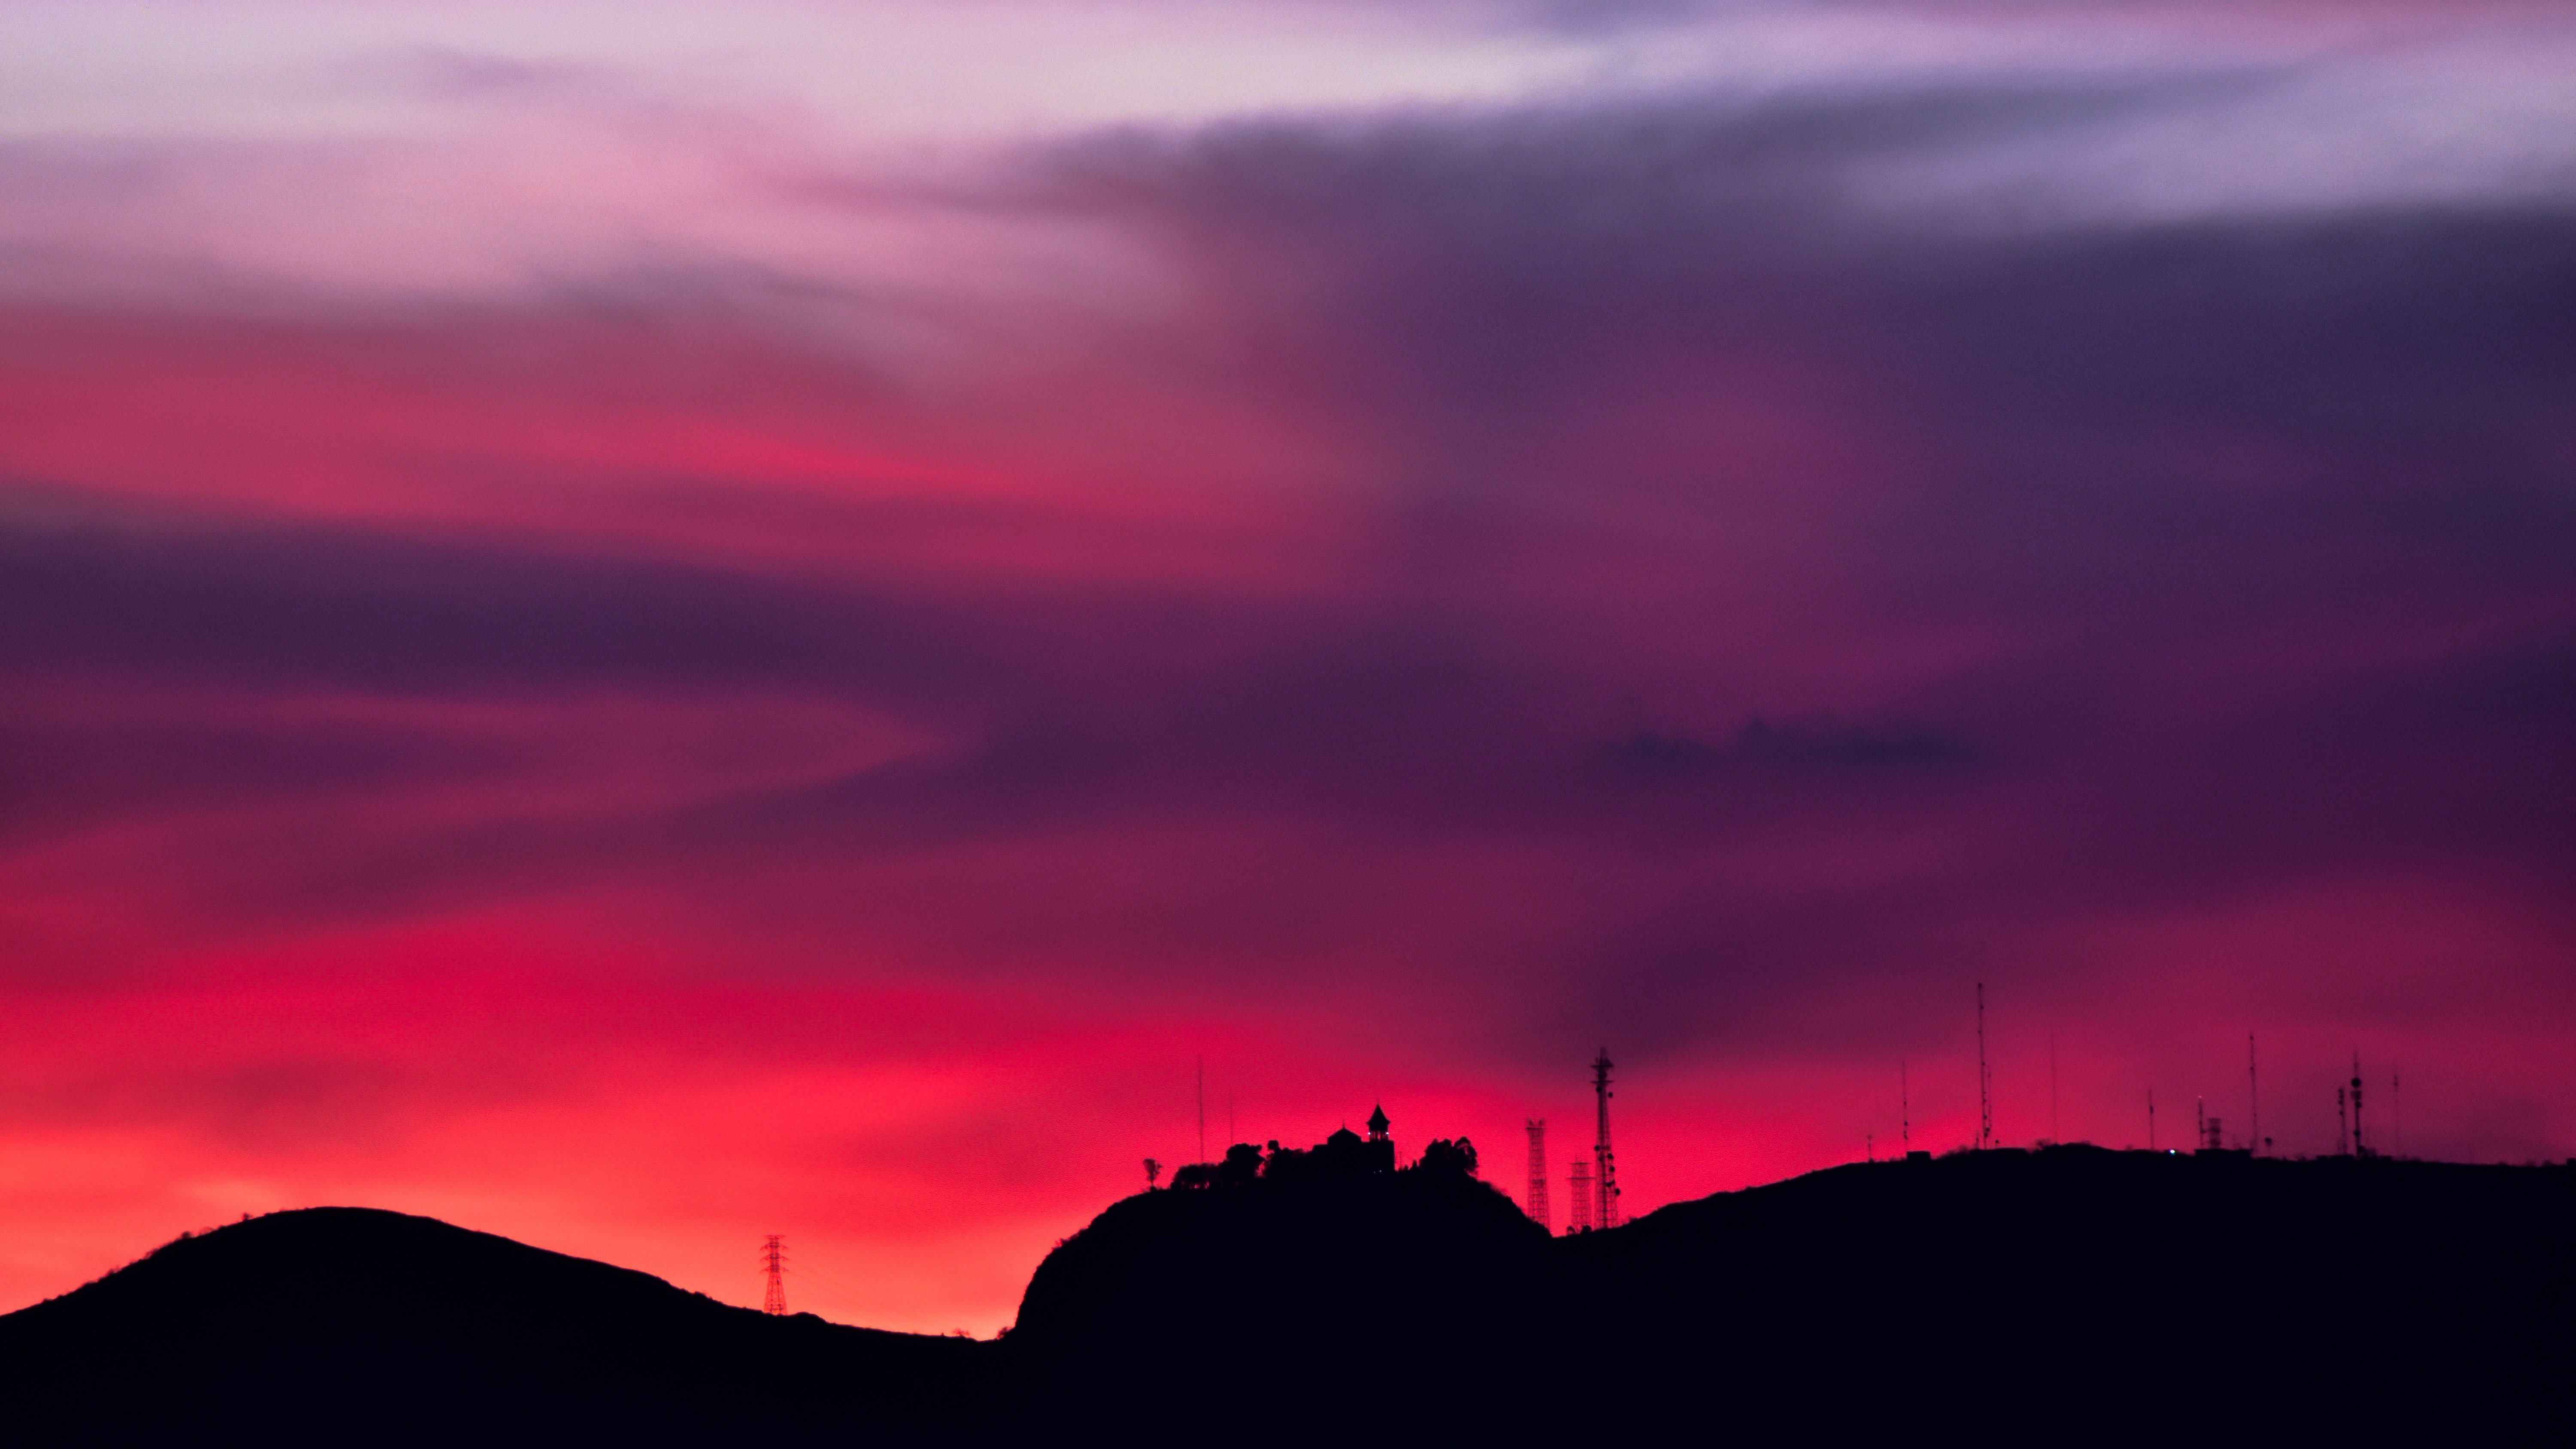 silhouette on rock under purple and pink skies